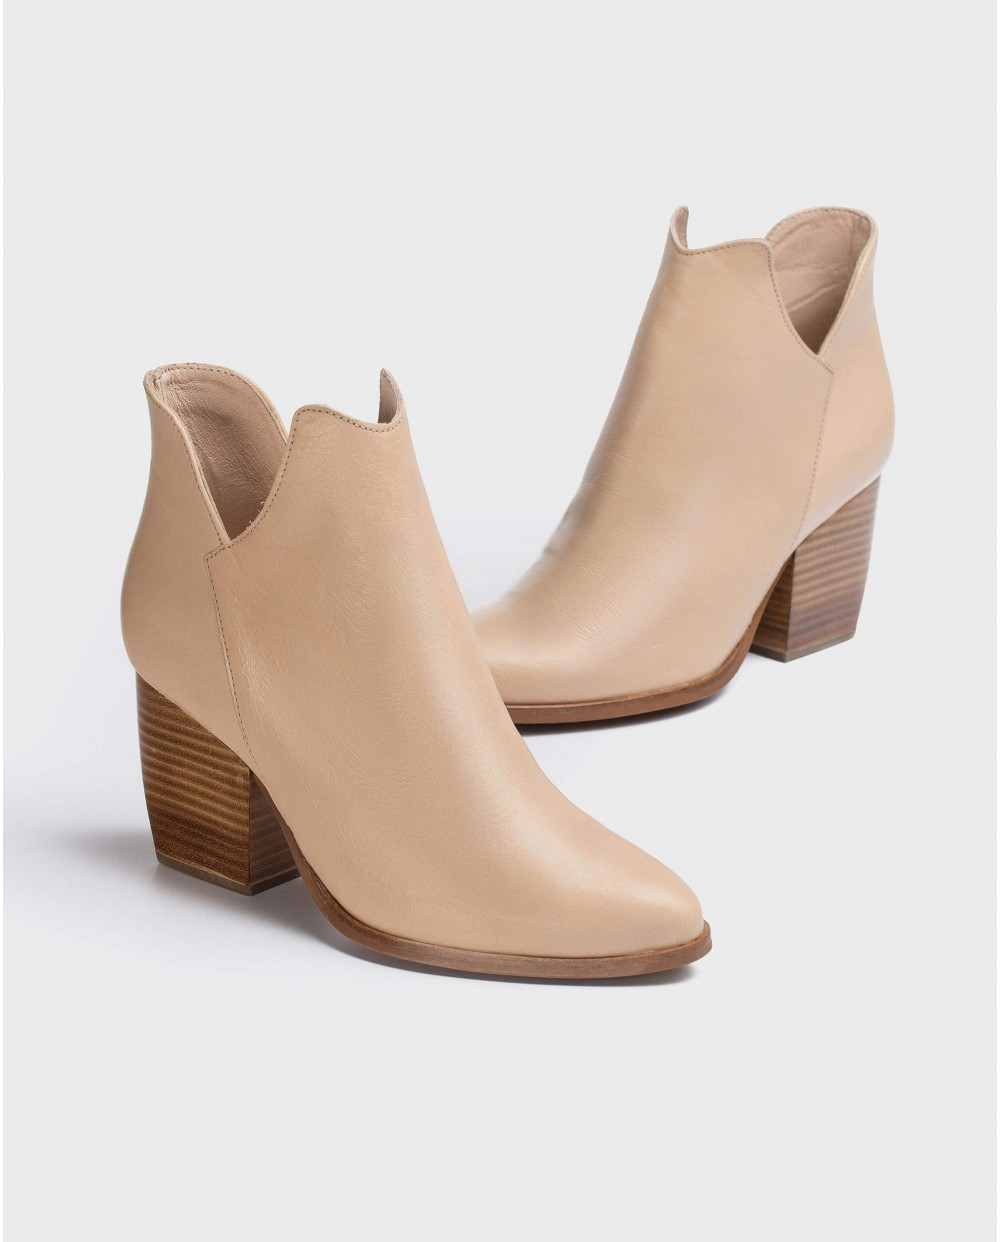 Wonders-Ankle Boots-Leather cut out cowboy ankle boot